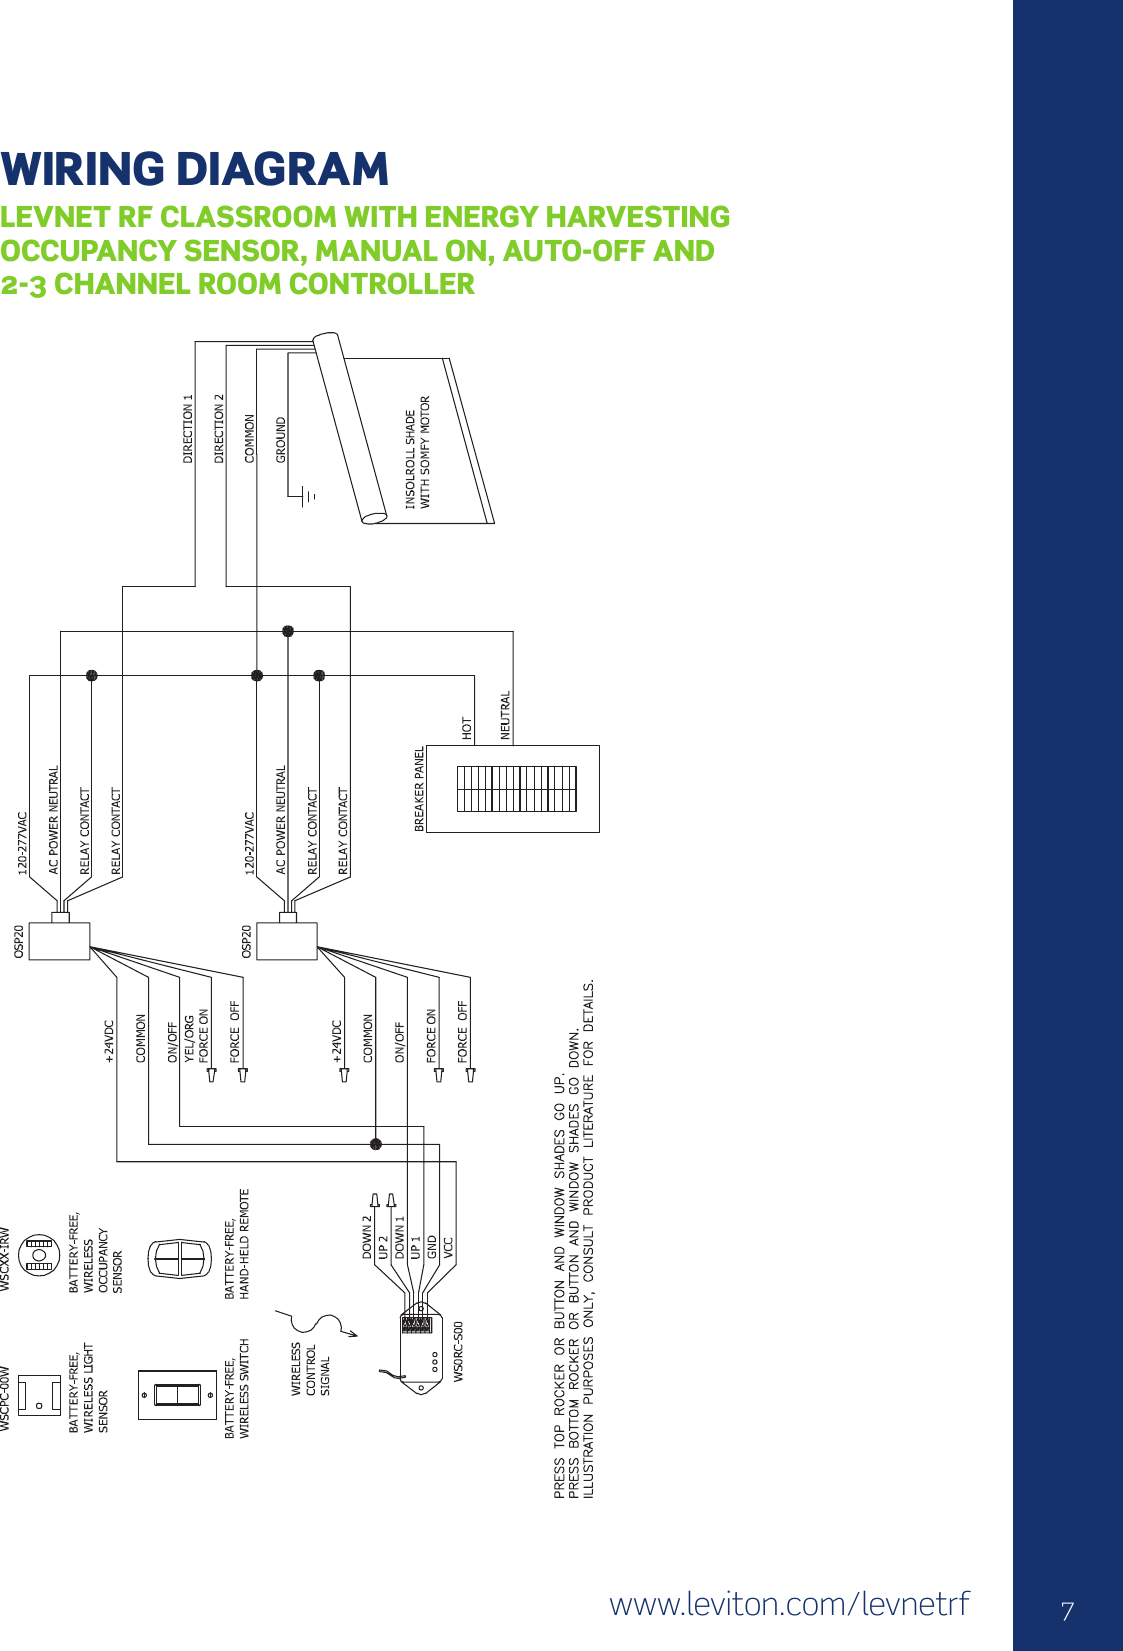 Installation Directions Diions Wiring Diagram Page 7 Of 8